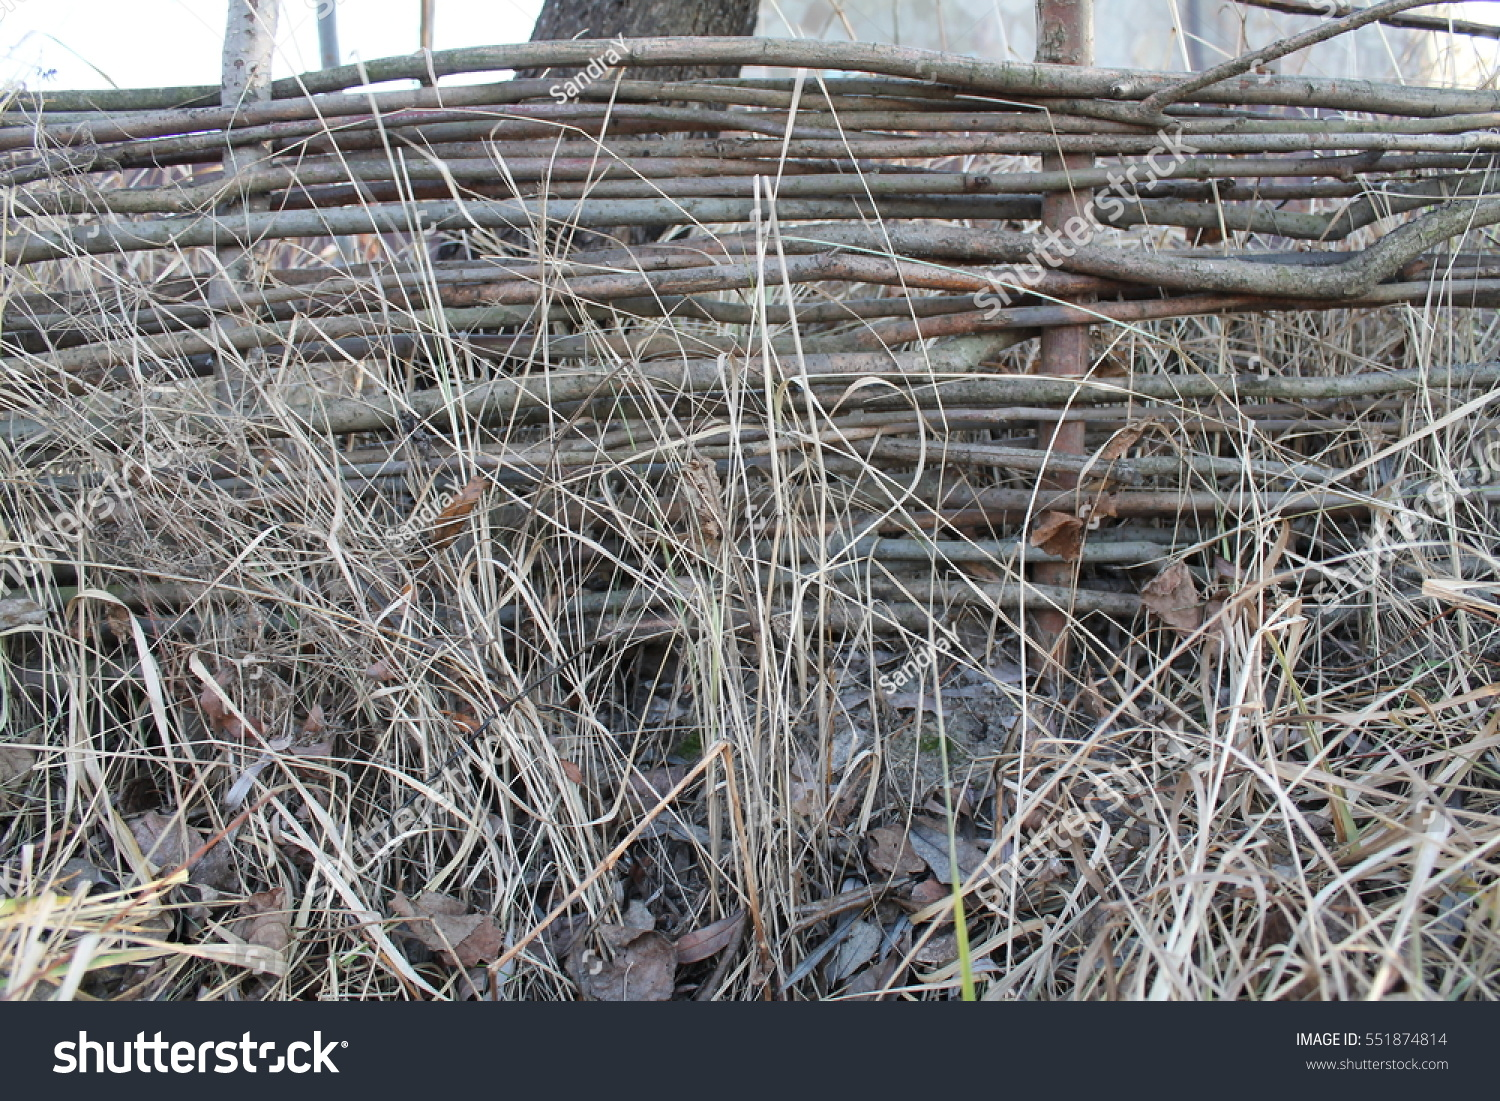 Lath Fence Stock Photo 551874814 : Shutterstock